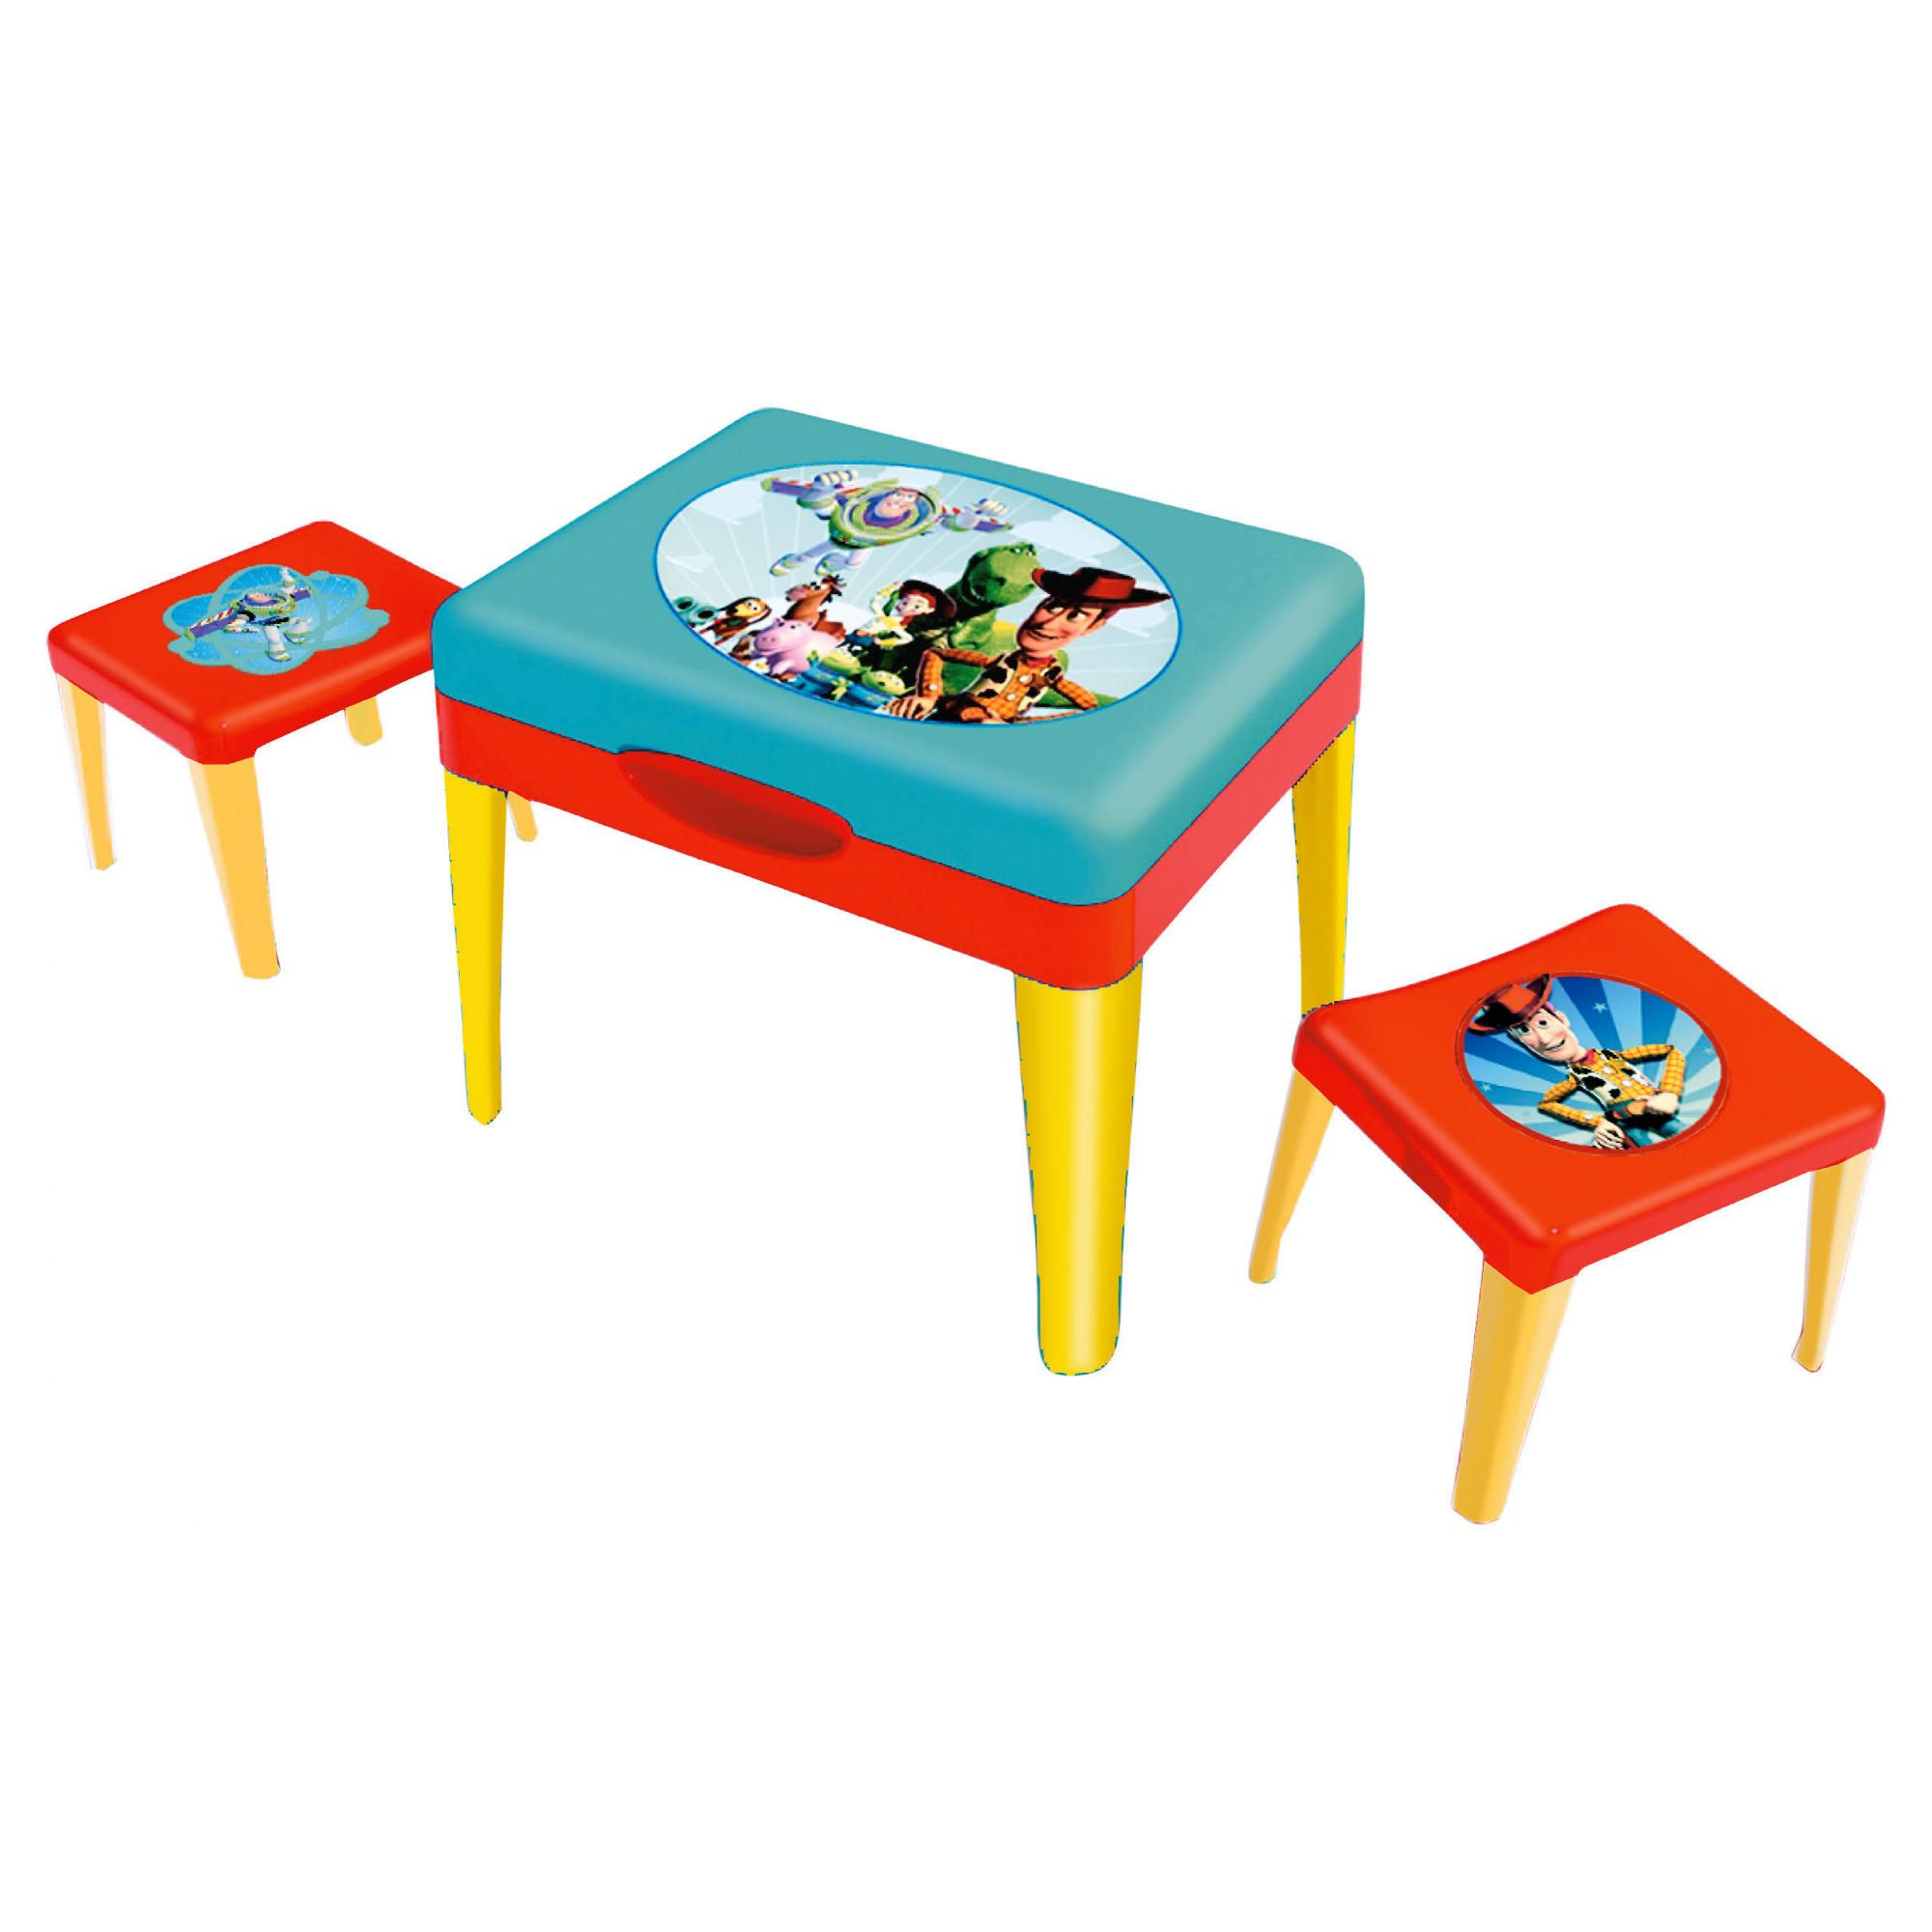 Toy Story Stool : Computernow tesco consoles and toys